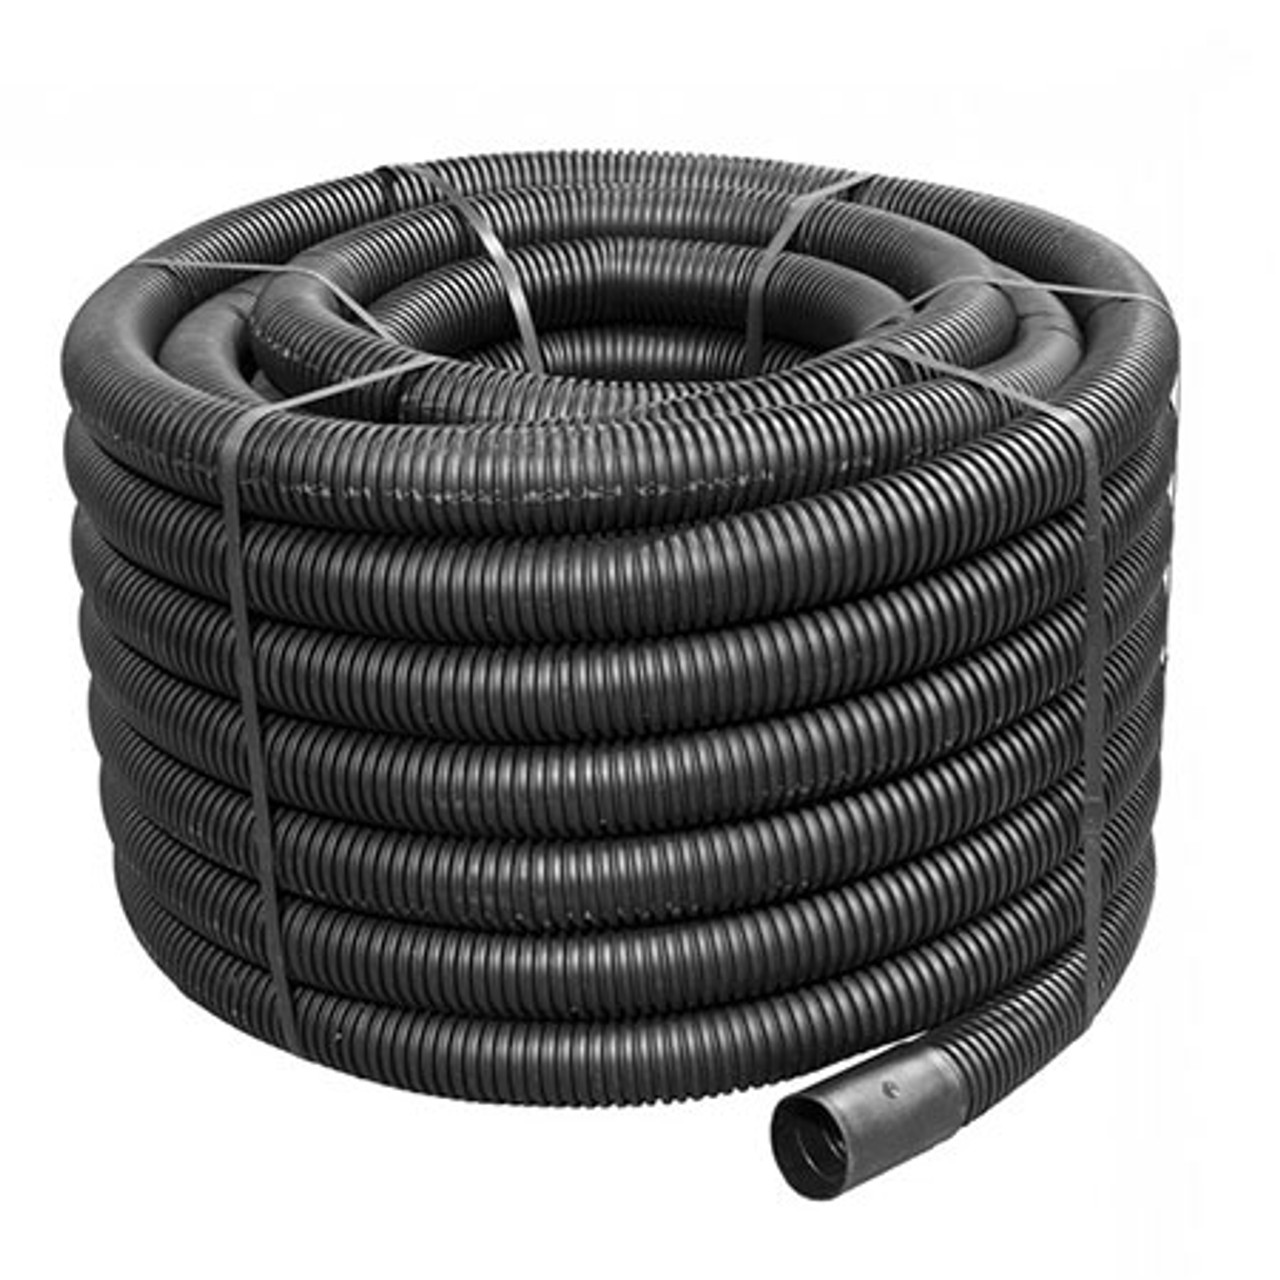 50/63mm class 3 power ducting coil (50m).